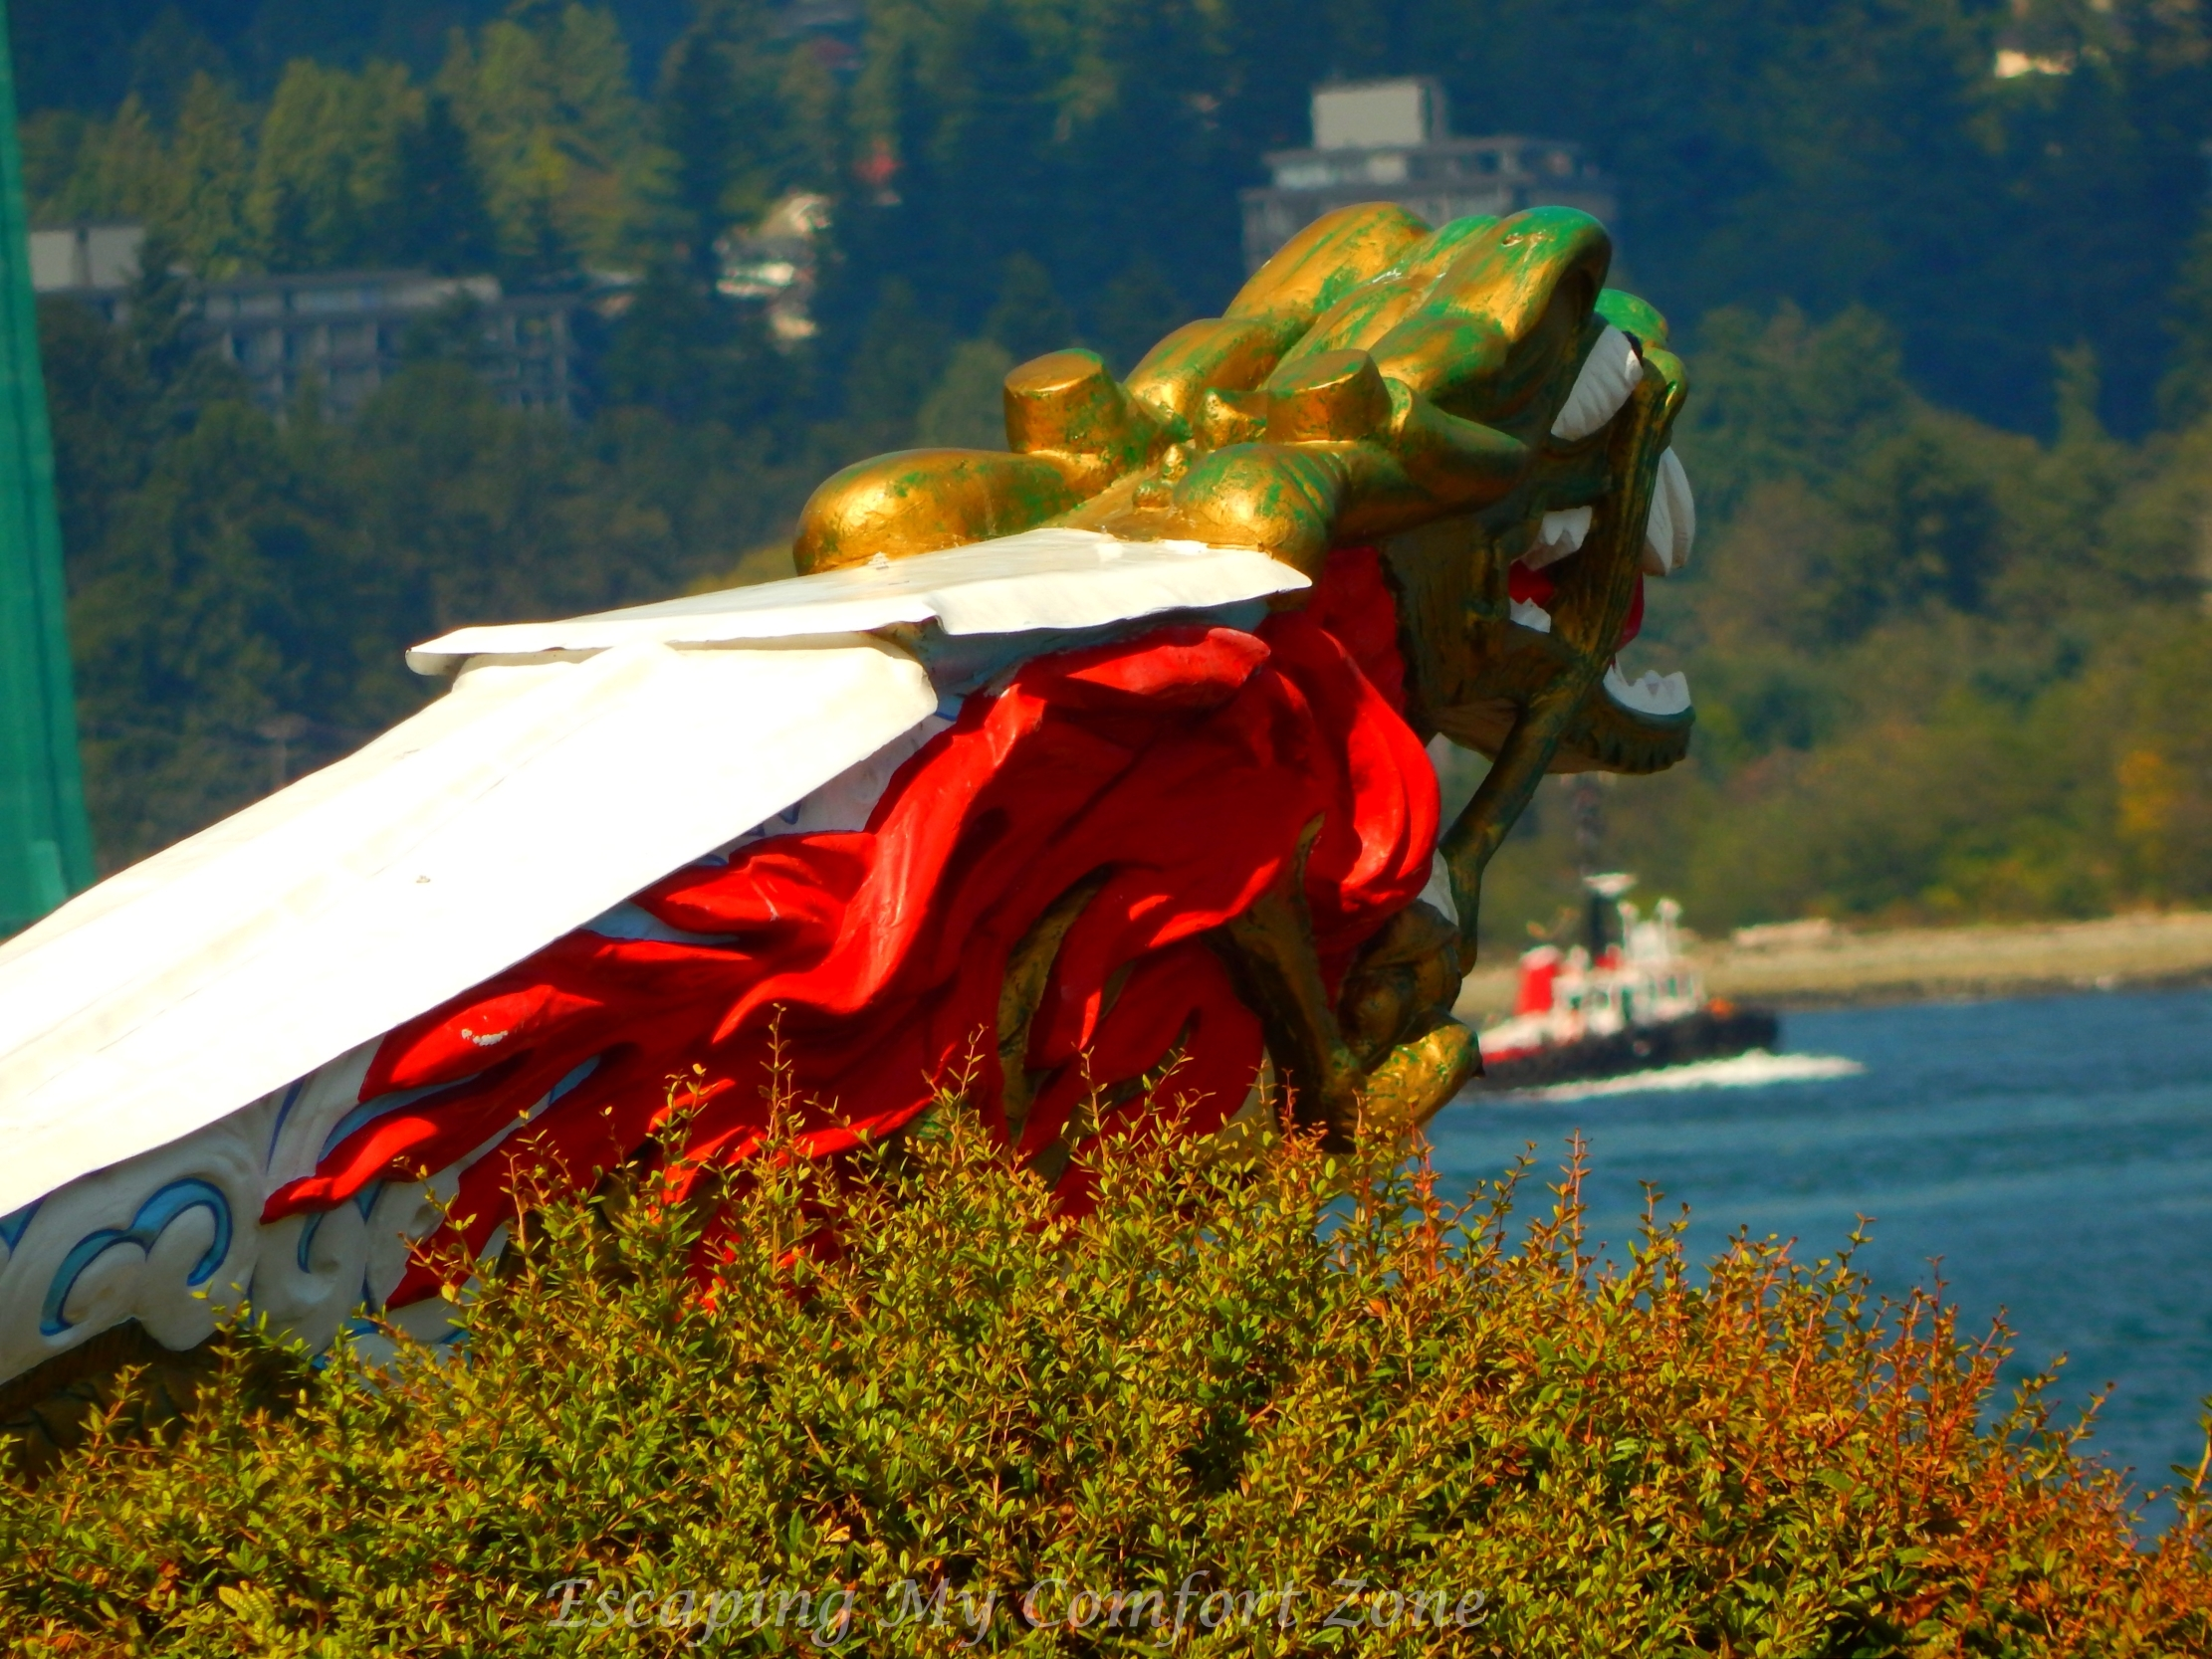 Figurehead of the RMS Empress of Japan, Stanley Park